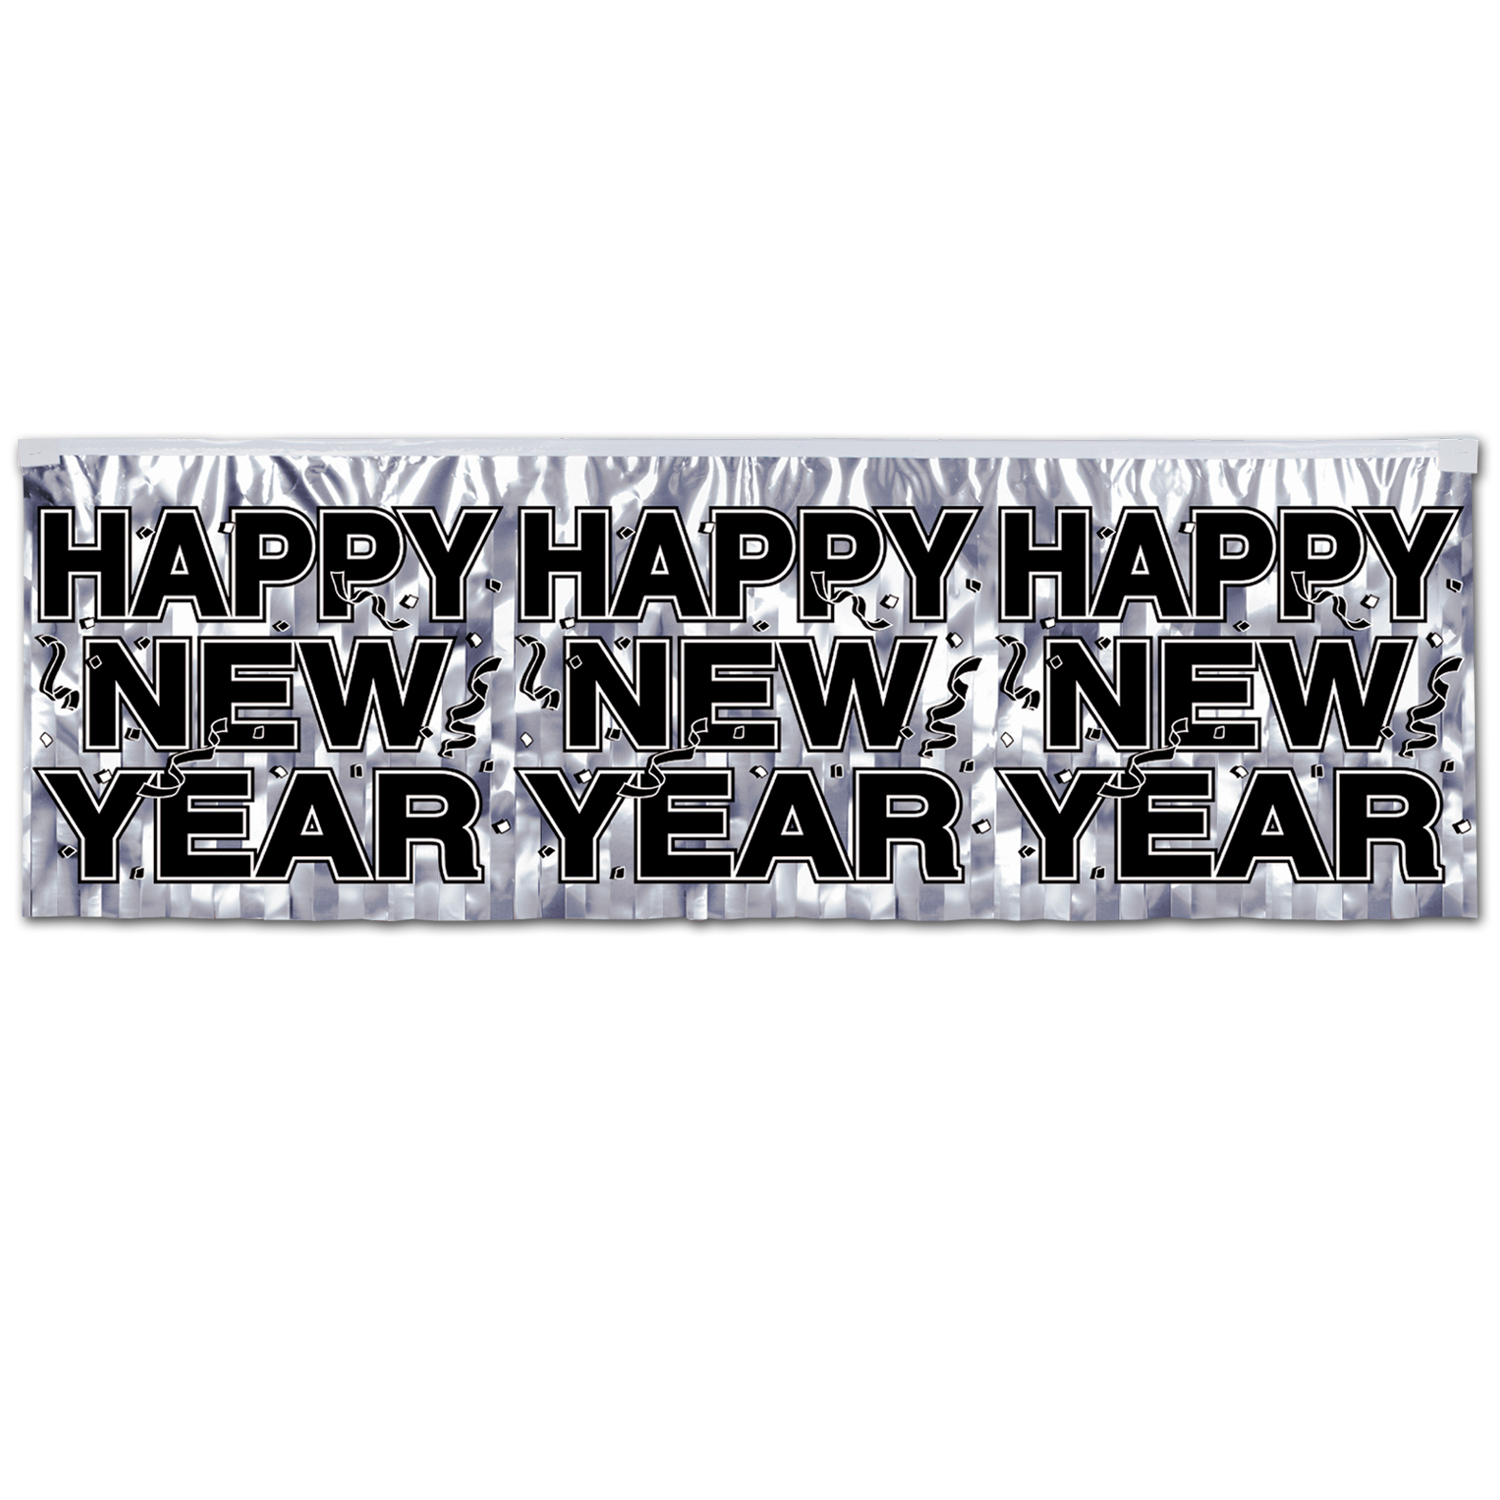 Metallic Happy New Year Fringe Banner (Pack of 1) Metallic Happy New Year Fringe Banner, Fringe Banner, Banners, Sign Banners, Stringers, New Year Banners, New Year's Eve, Holiday Banner